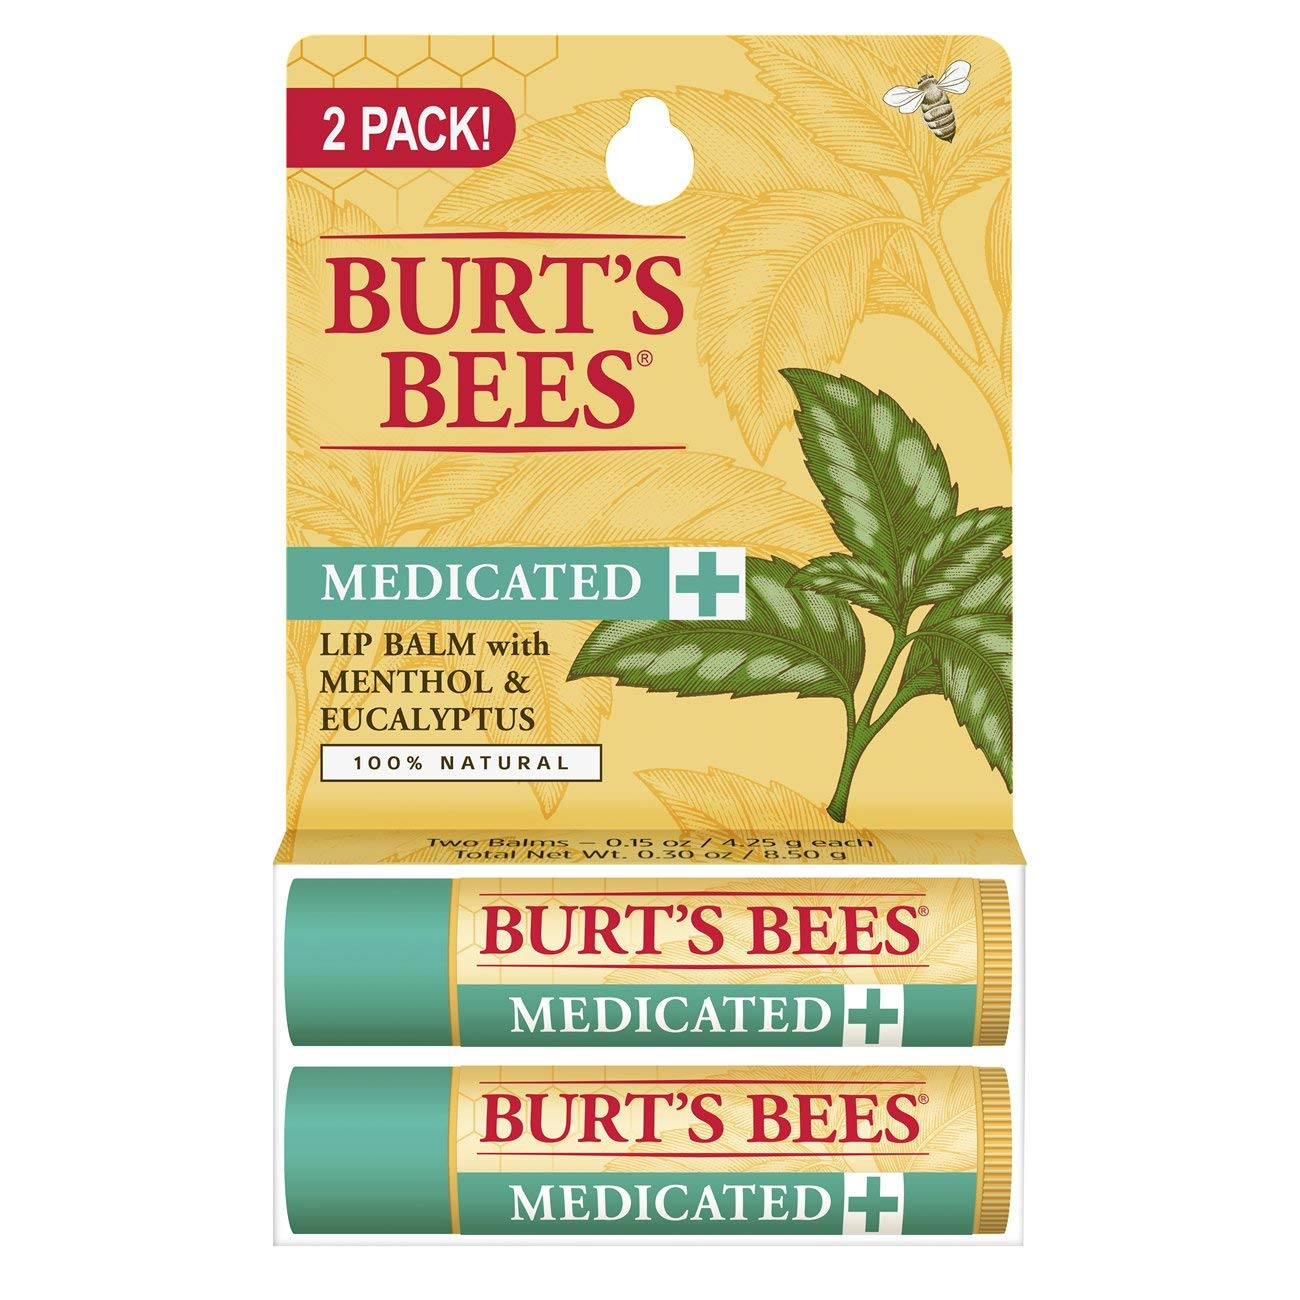 Burt's Bees 100% Natural Medicated Moisturizing Lip Balm with Menthol & Eucalyptus - 2 Tubes Burt's Bees Inc.